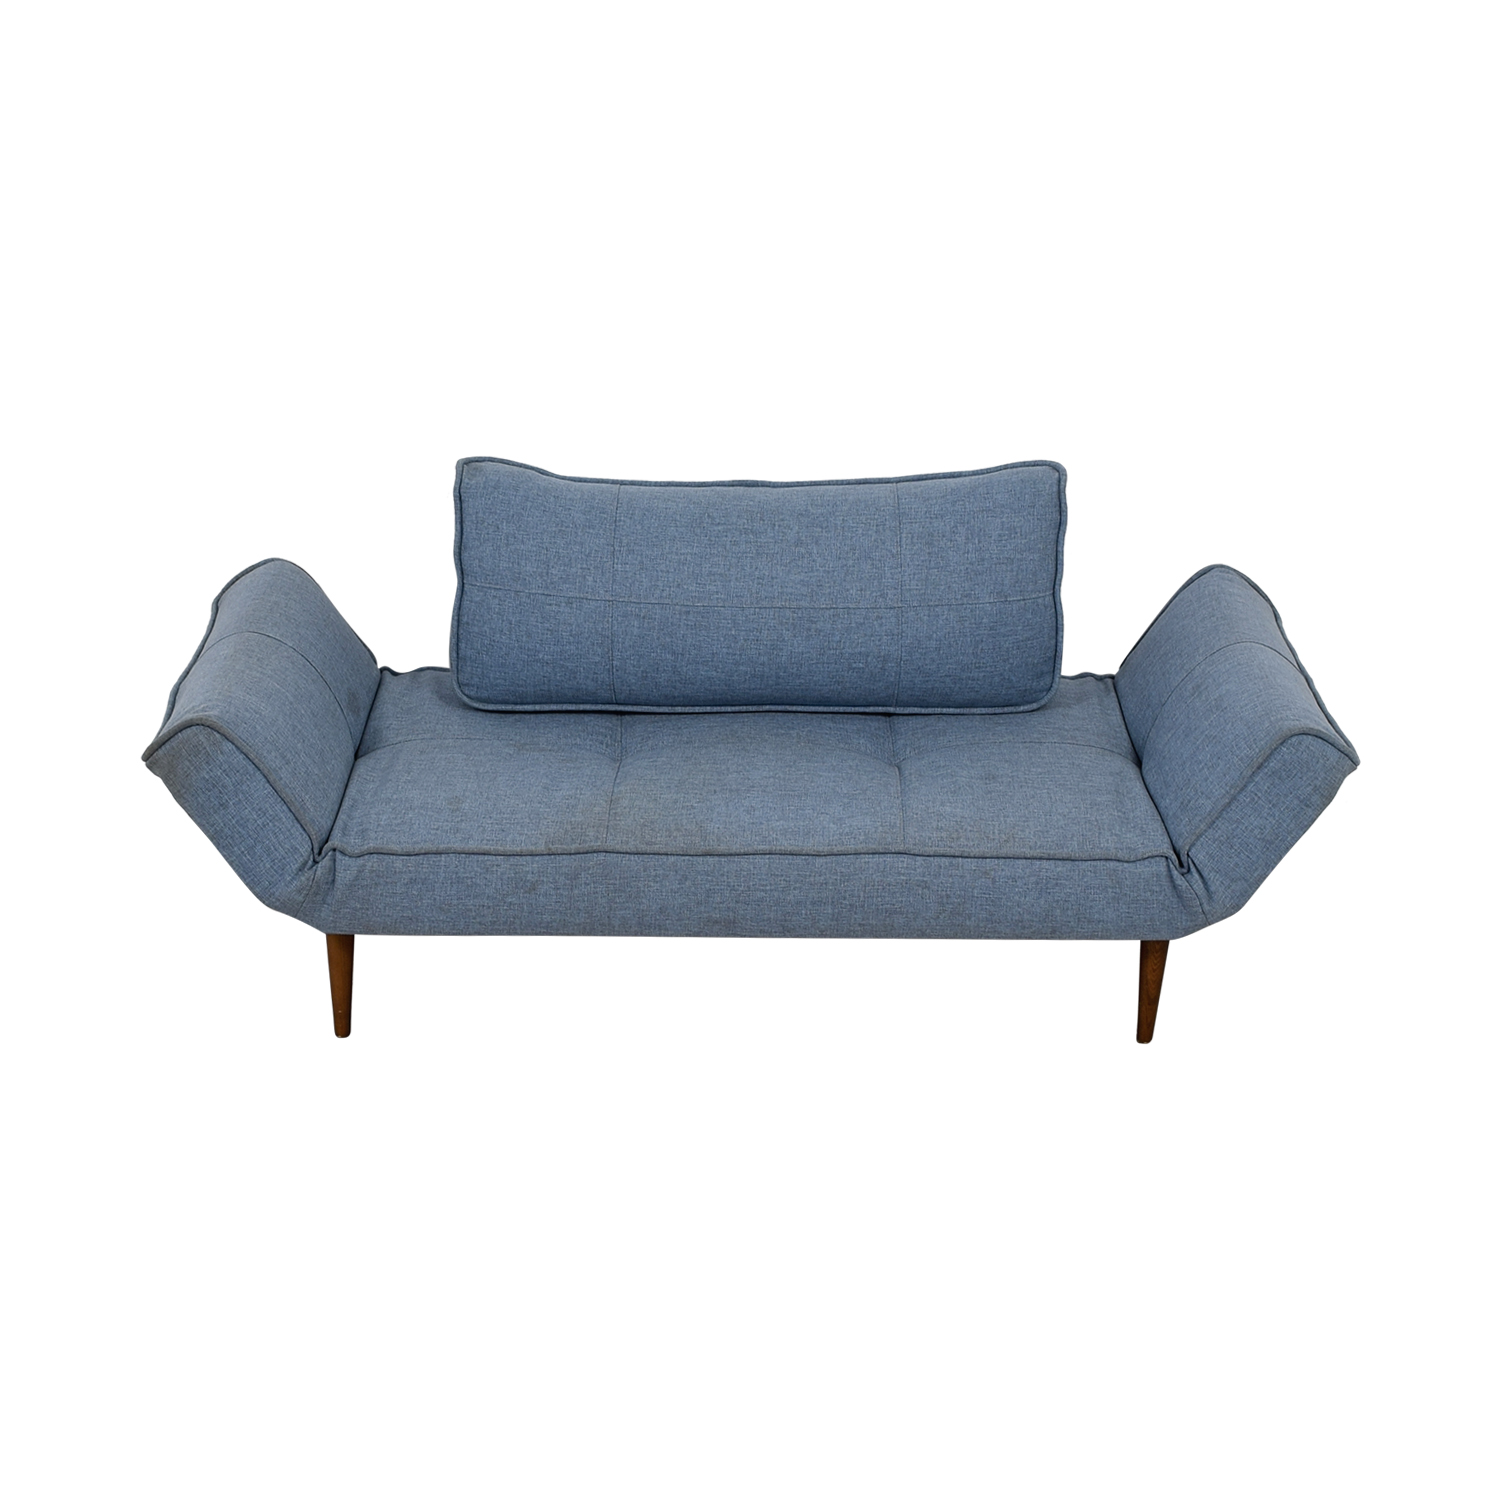 Blue Single Cushion Futon With Back Pillow price